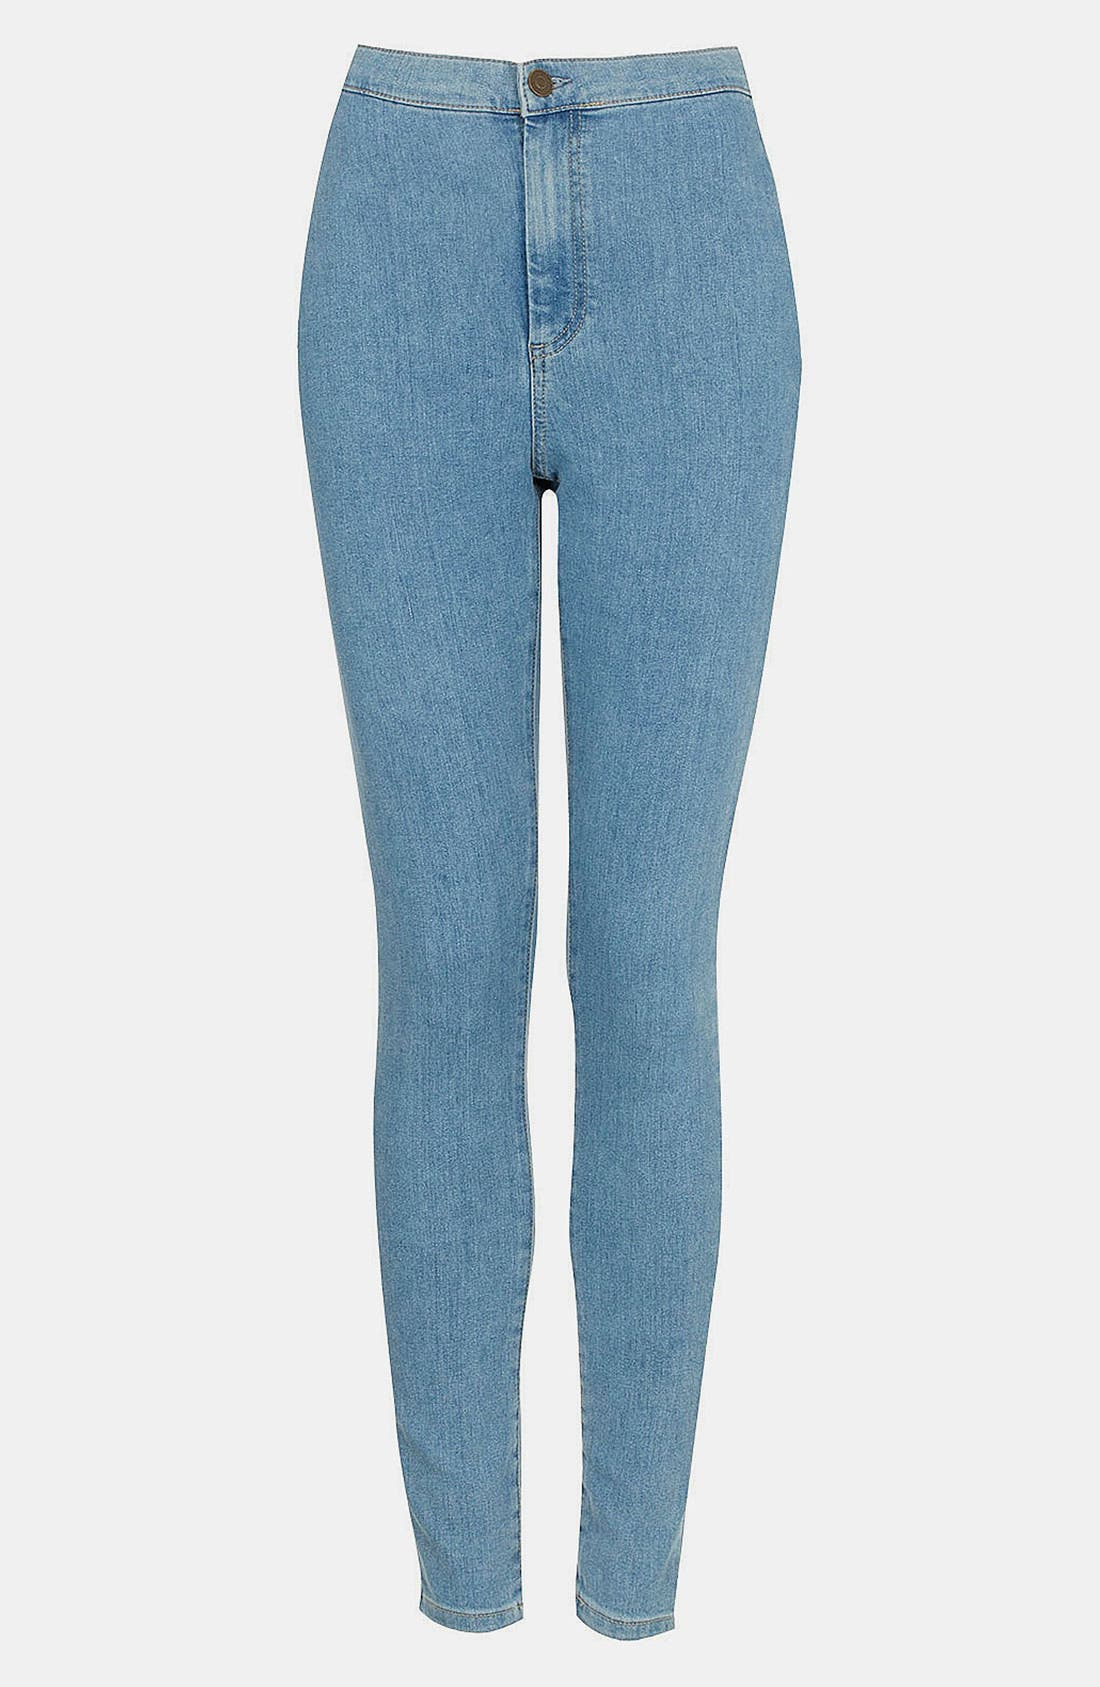 Alternate Image 1 Selected - Topshop Moto 'Joni' High Waist Skinny Jeans (Mid Stone) (Short)